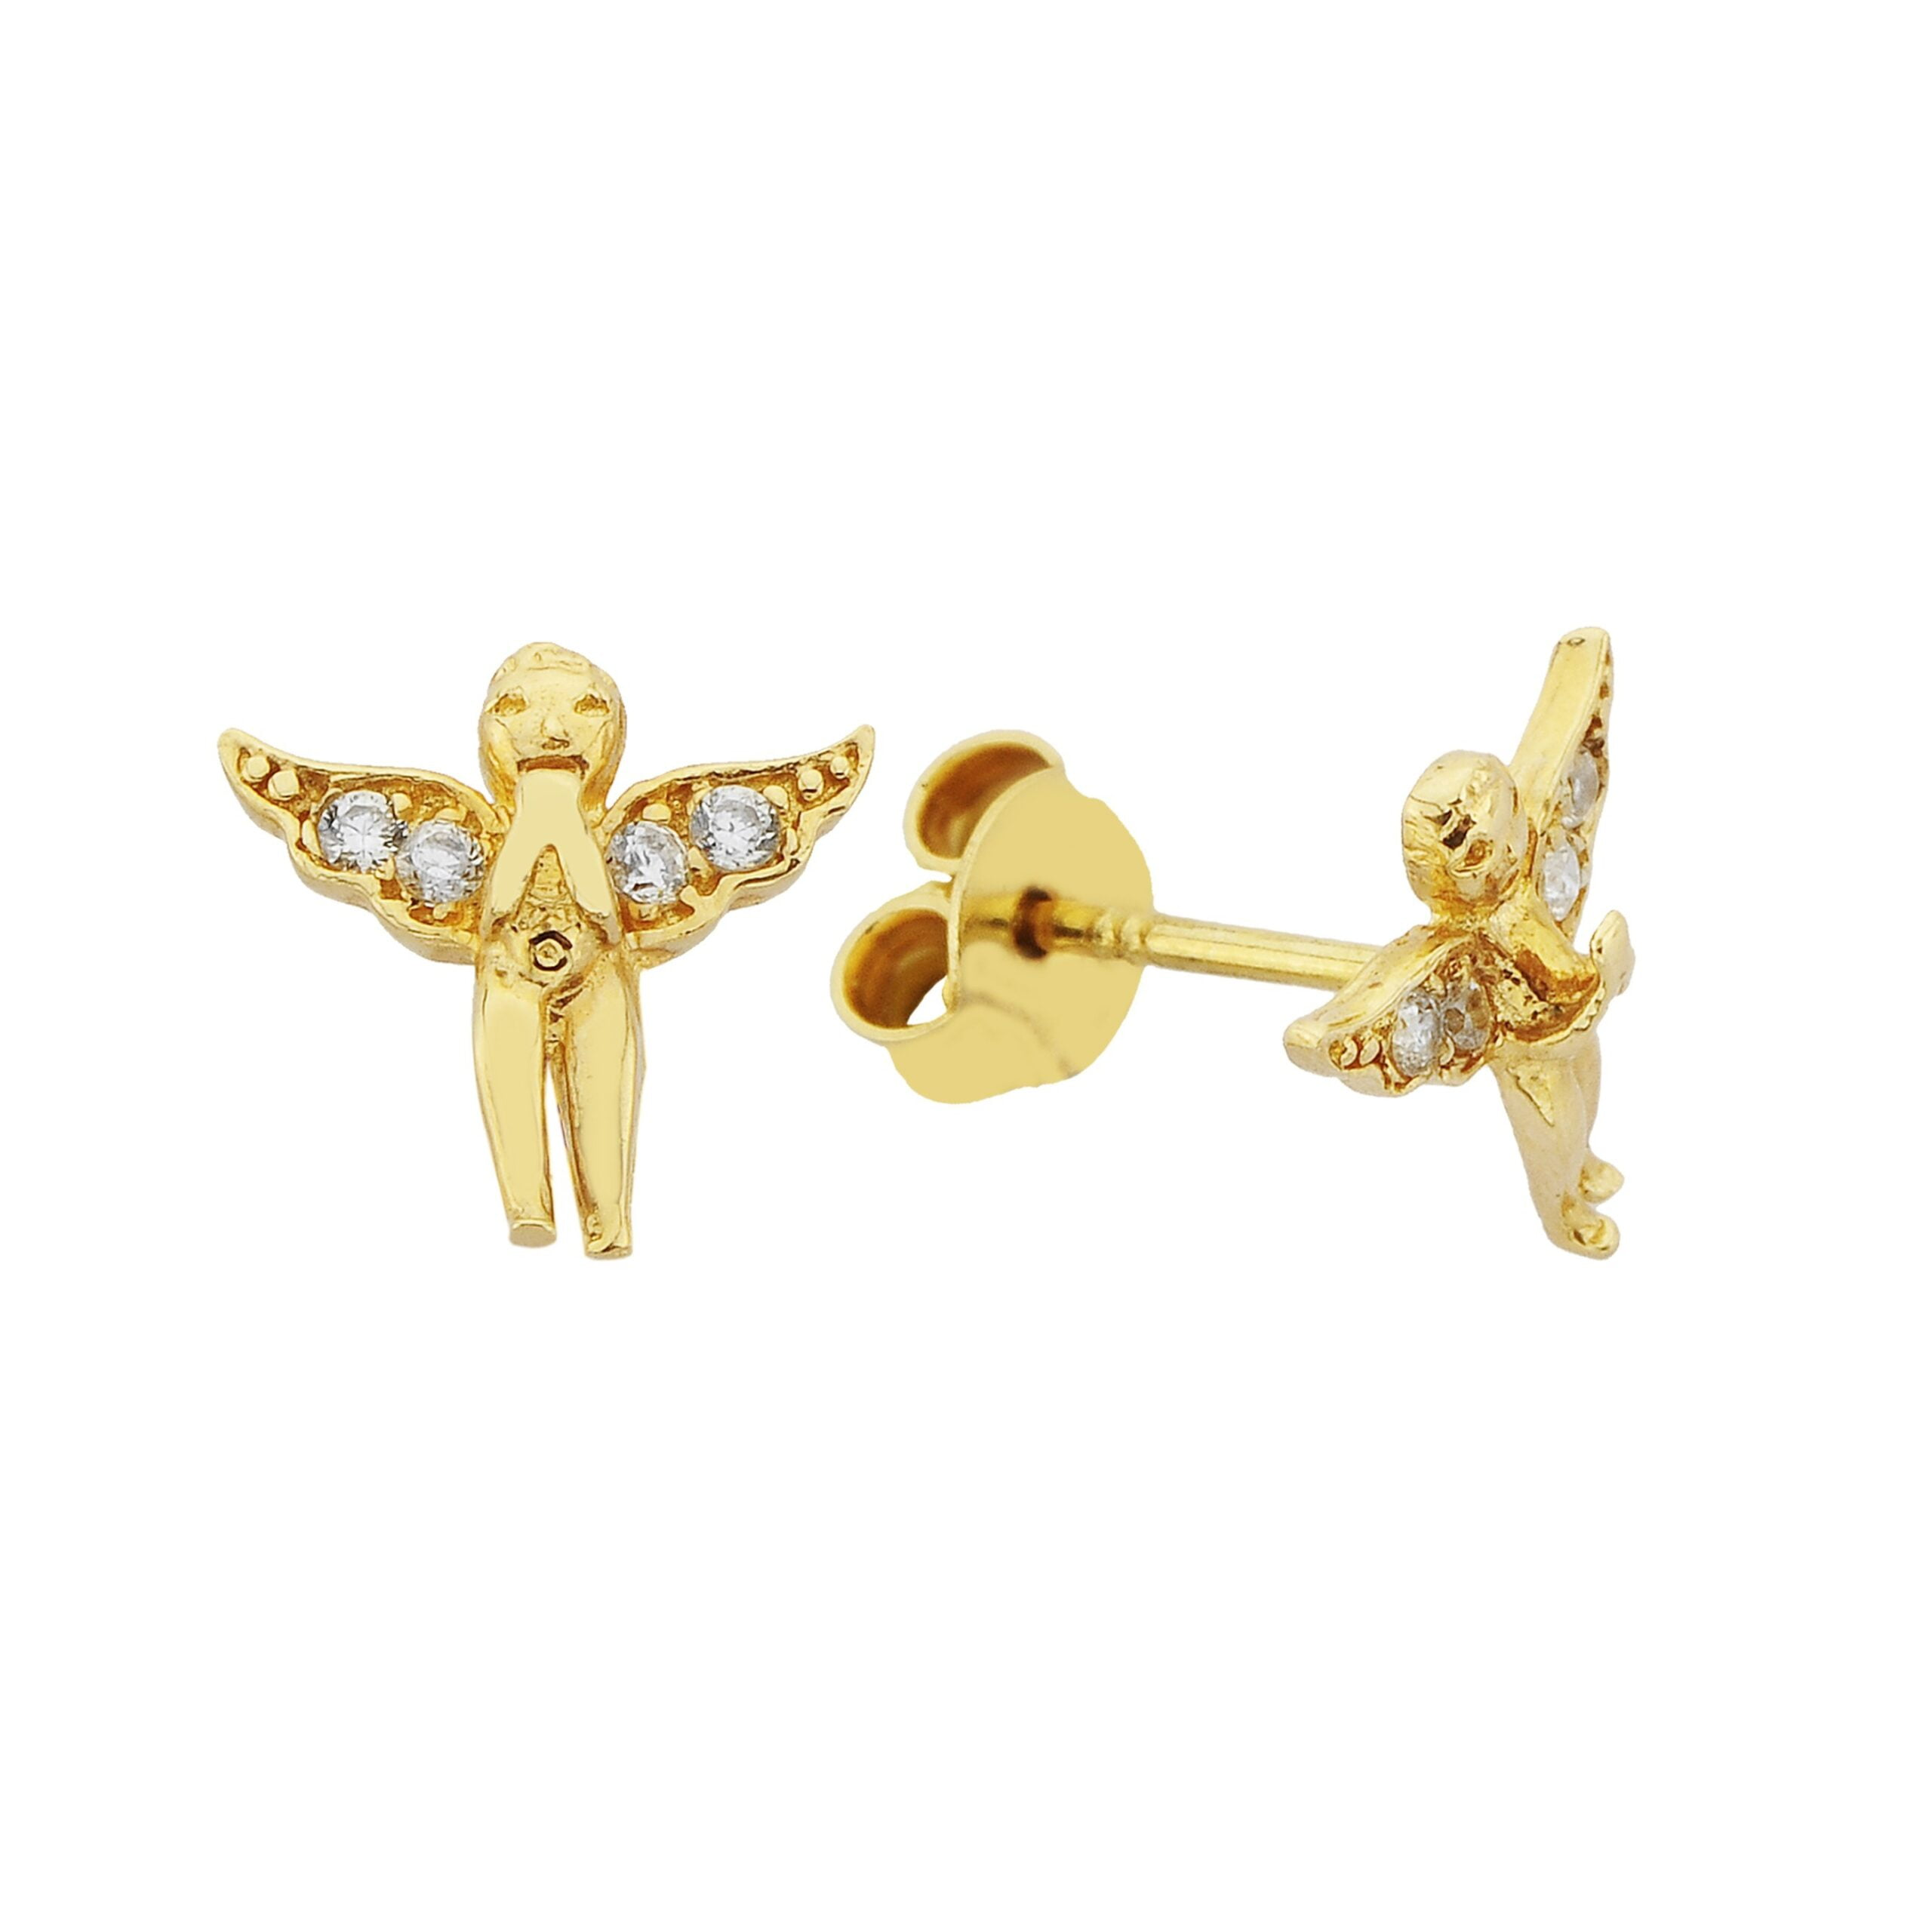 14K Real Solid Gold Angel Stud Earrings for Women guardian jewelry handmade birthday gift christmas xmas mother's day tiny minimalist